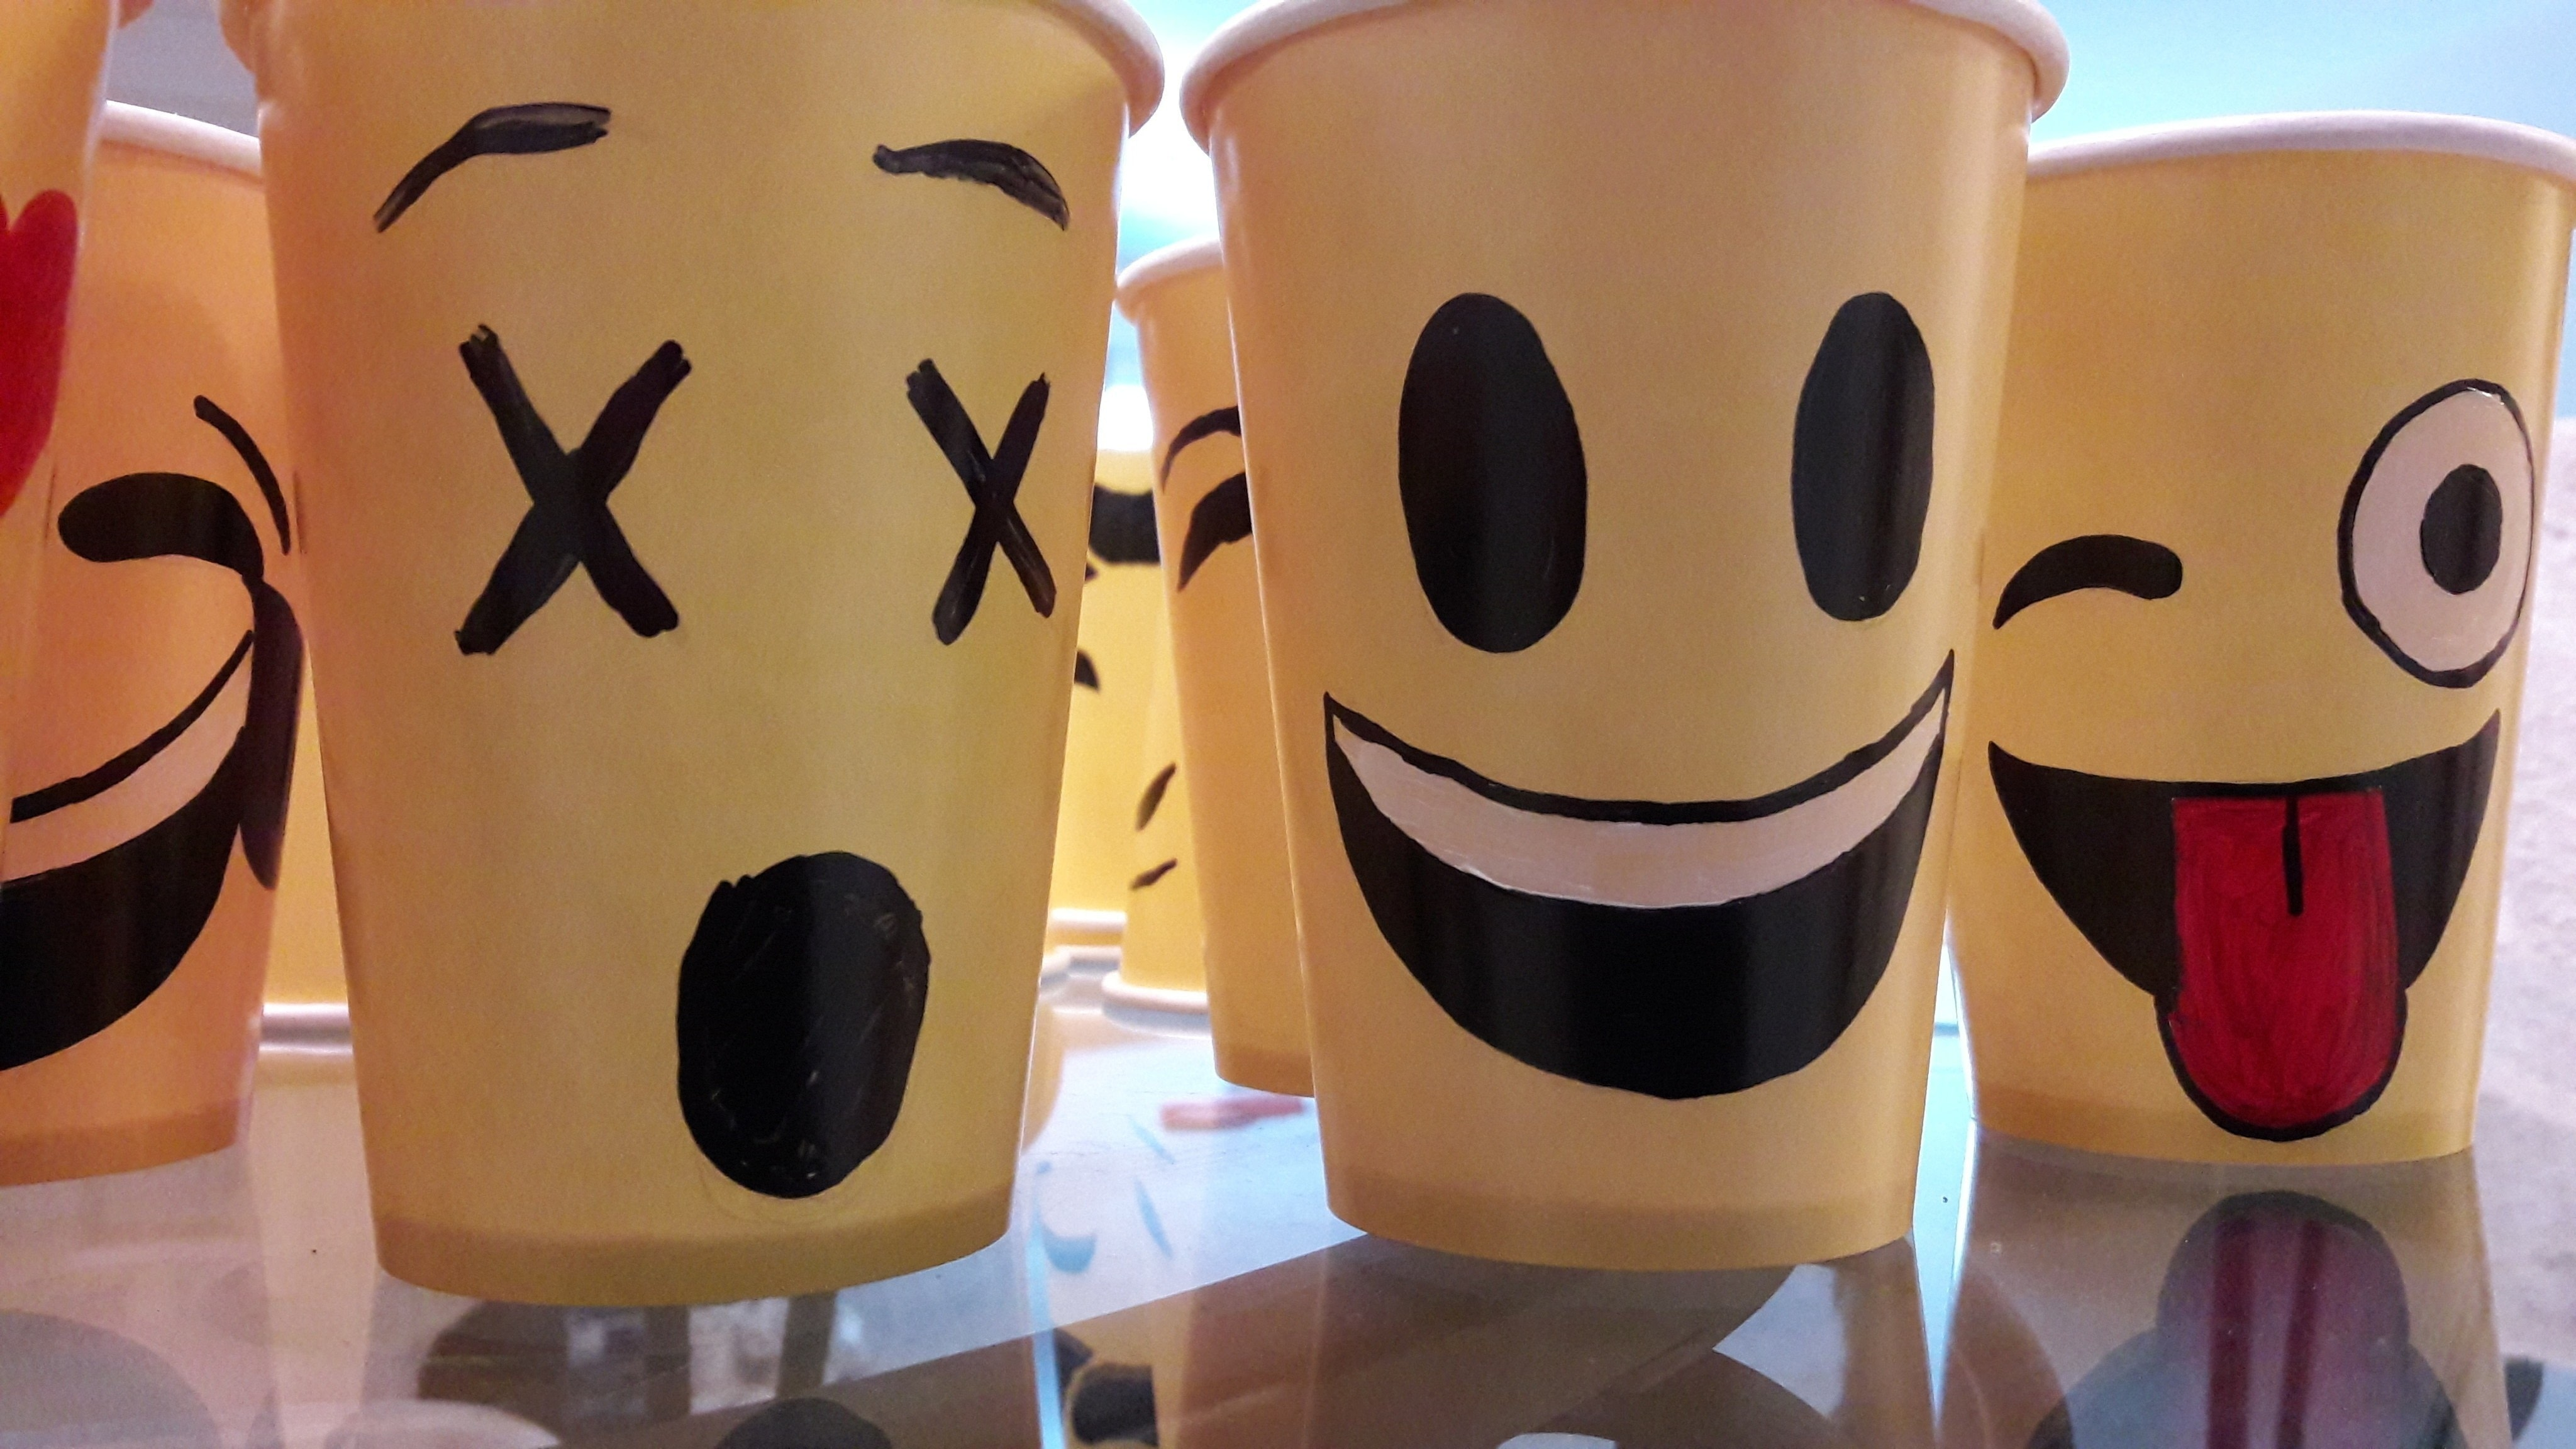 Emoji Face Paper Cups  How To Make A Cup  Mug  Decorating on Cut Out  Keep